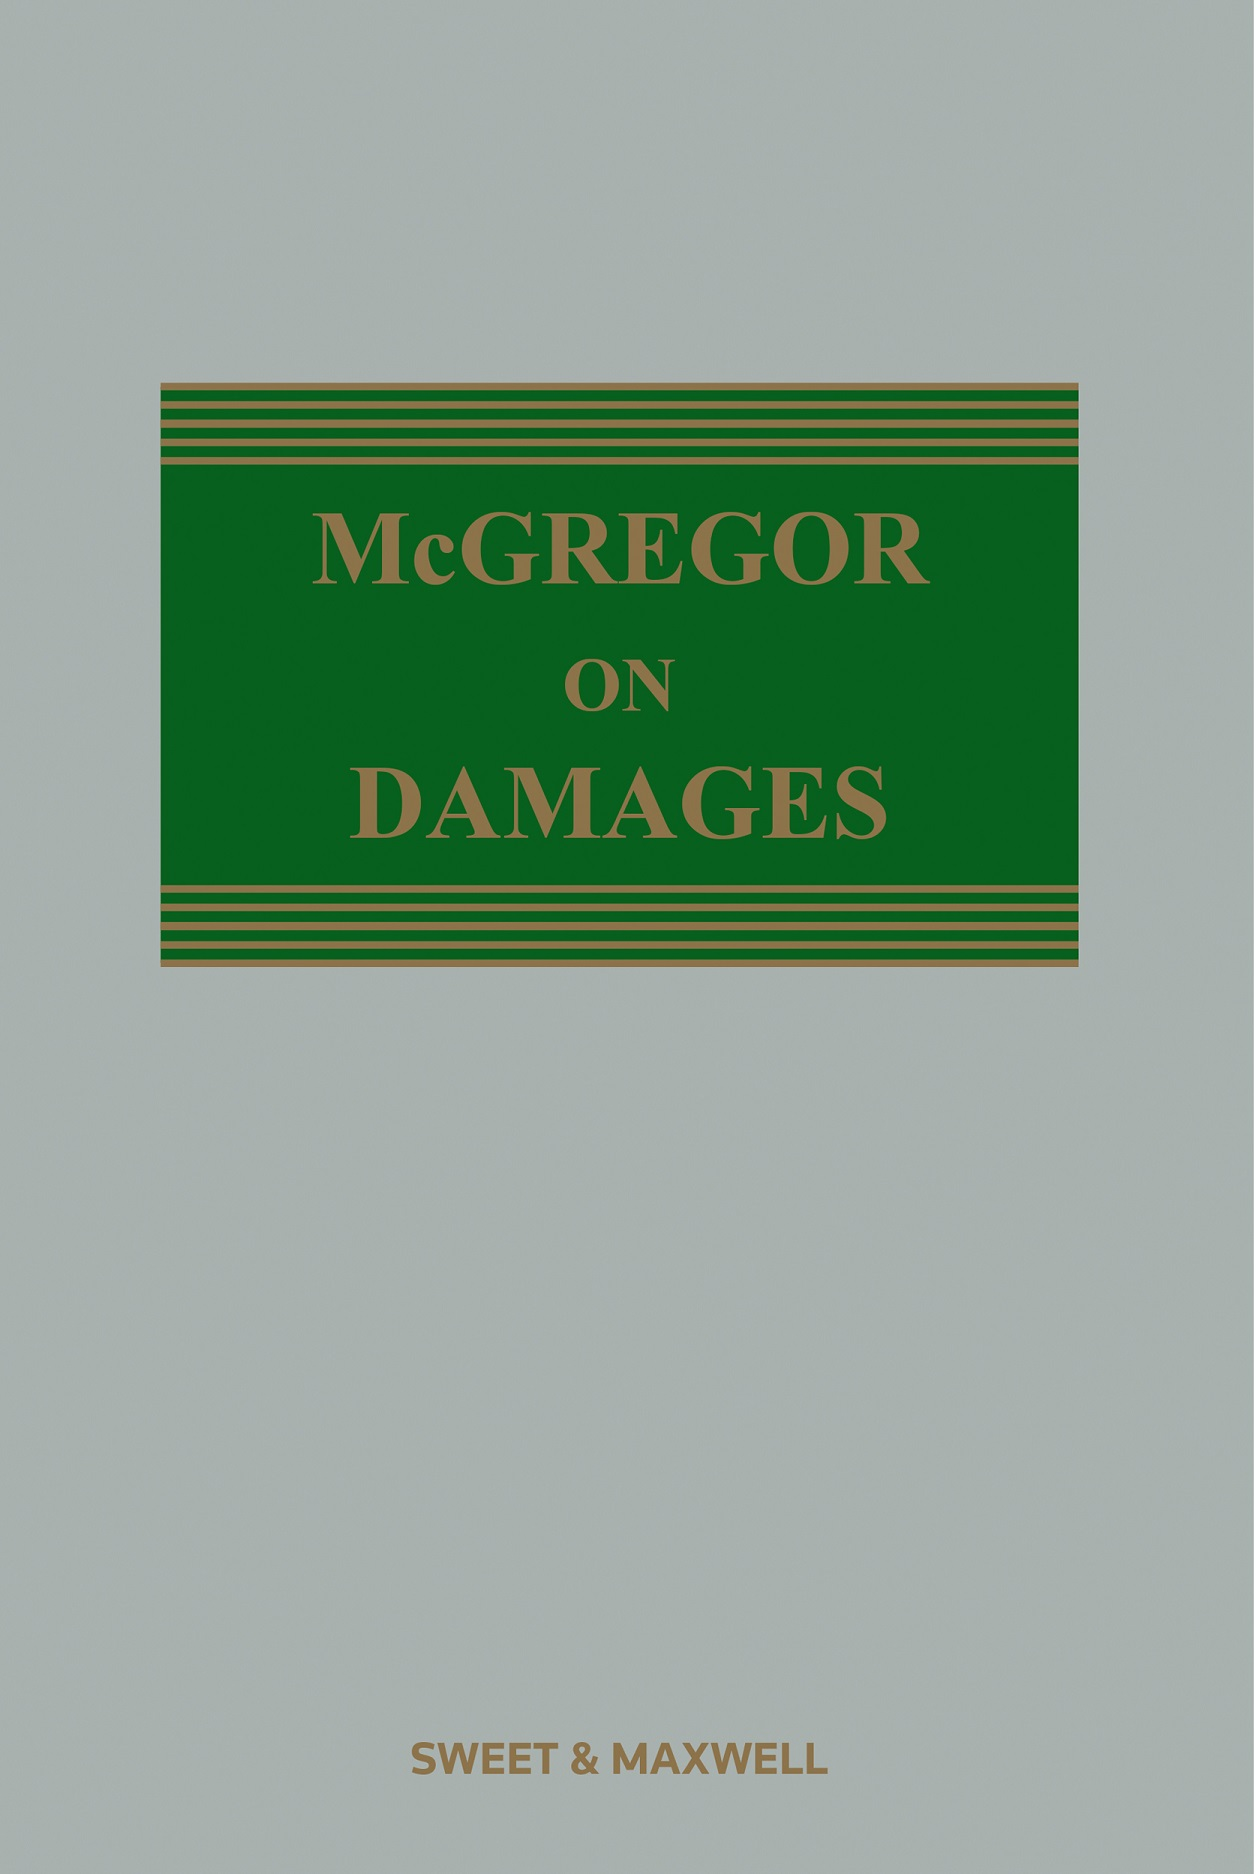 Mcgregor on damages 20th edition thomson reuters australia mcgregor on damages 20th edition fandeluxe Choice Image